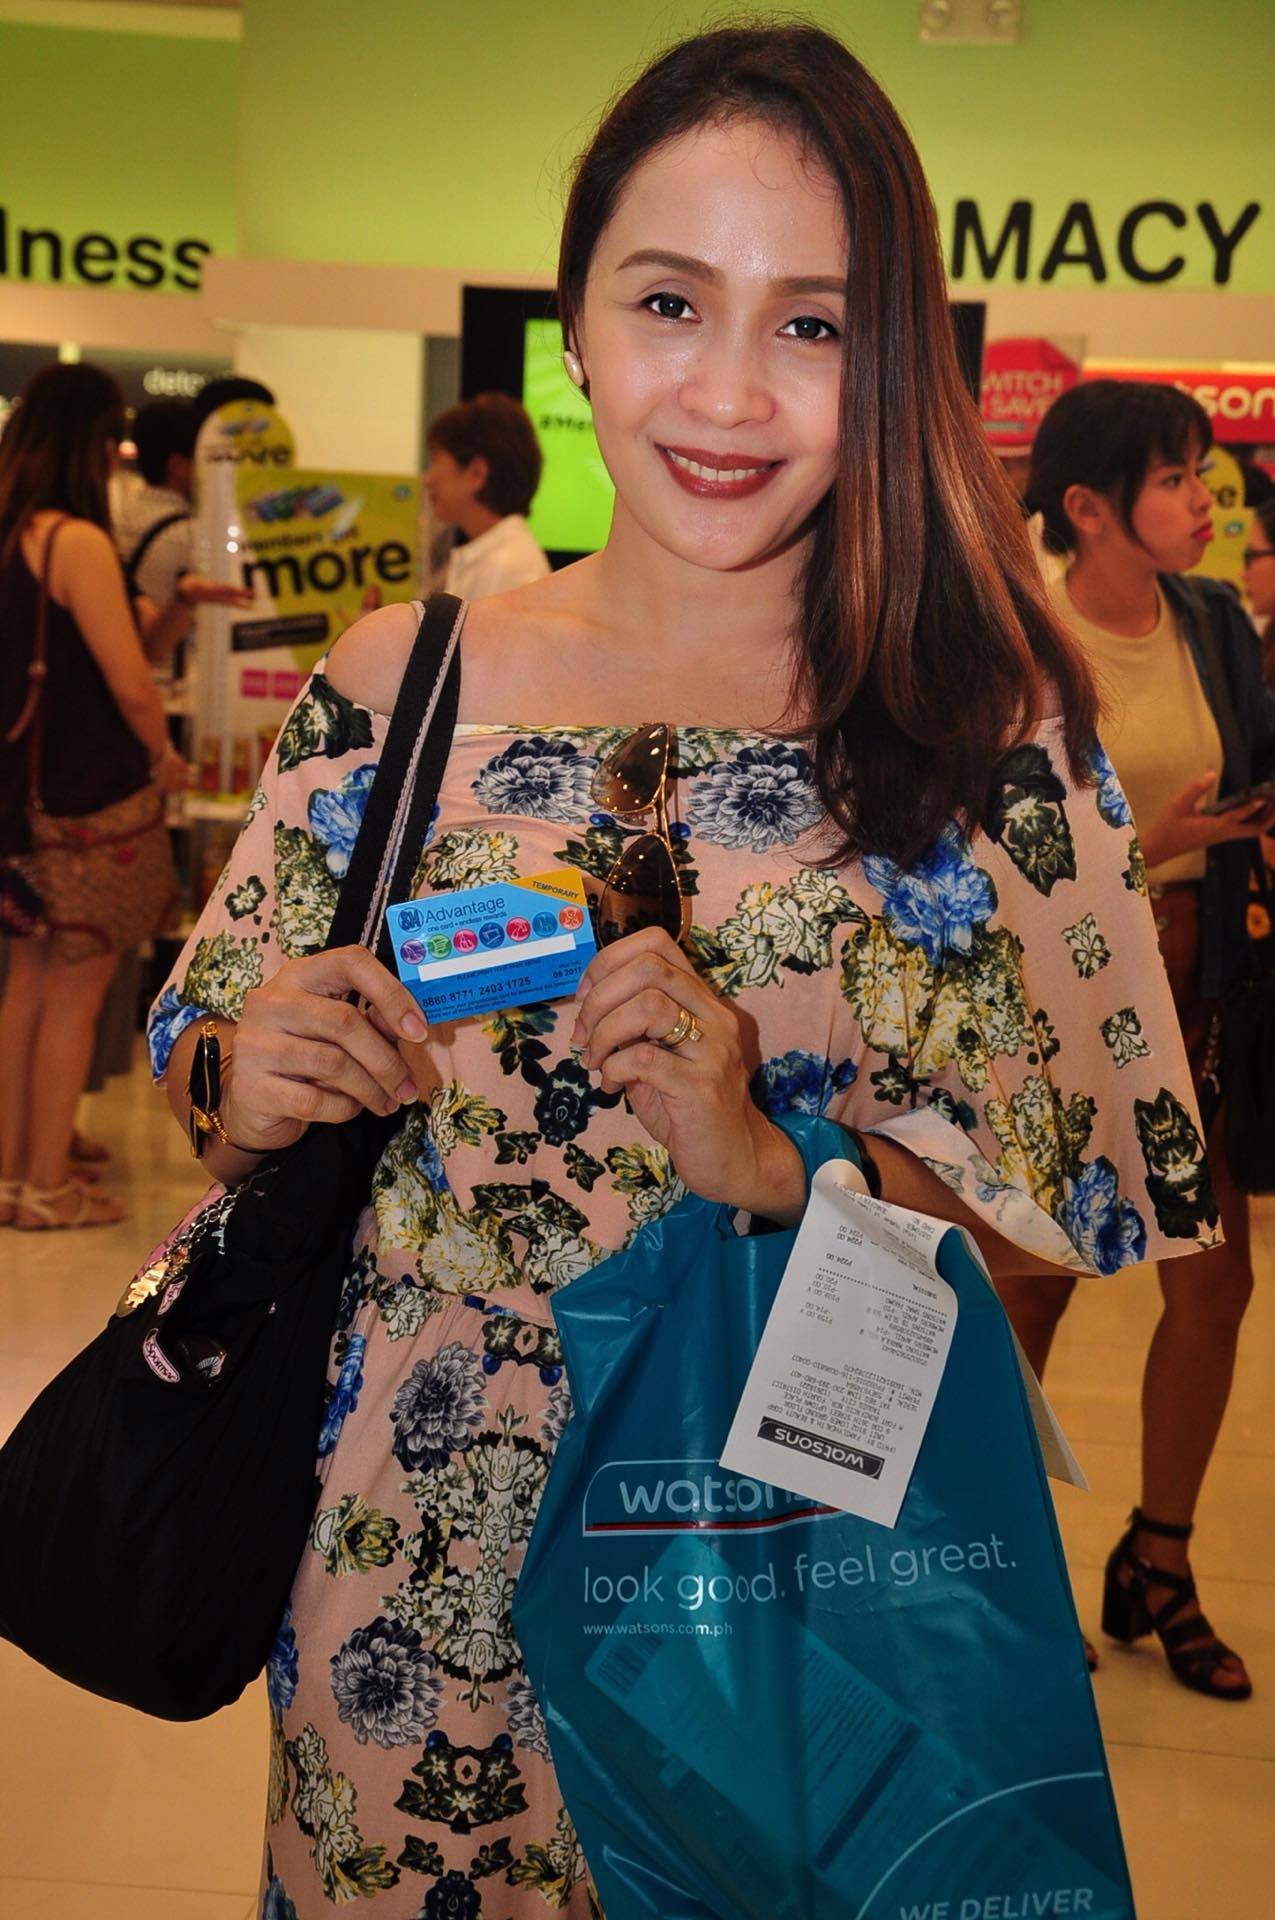 jen aspacio at the members get more at watsons launch